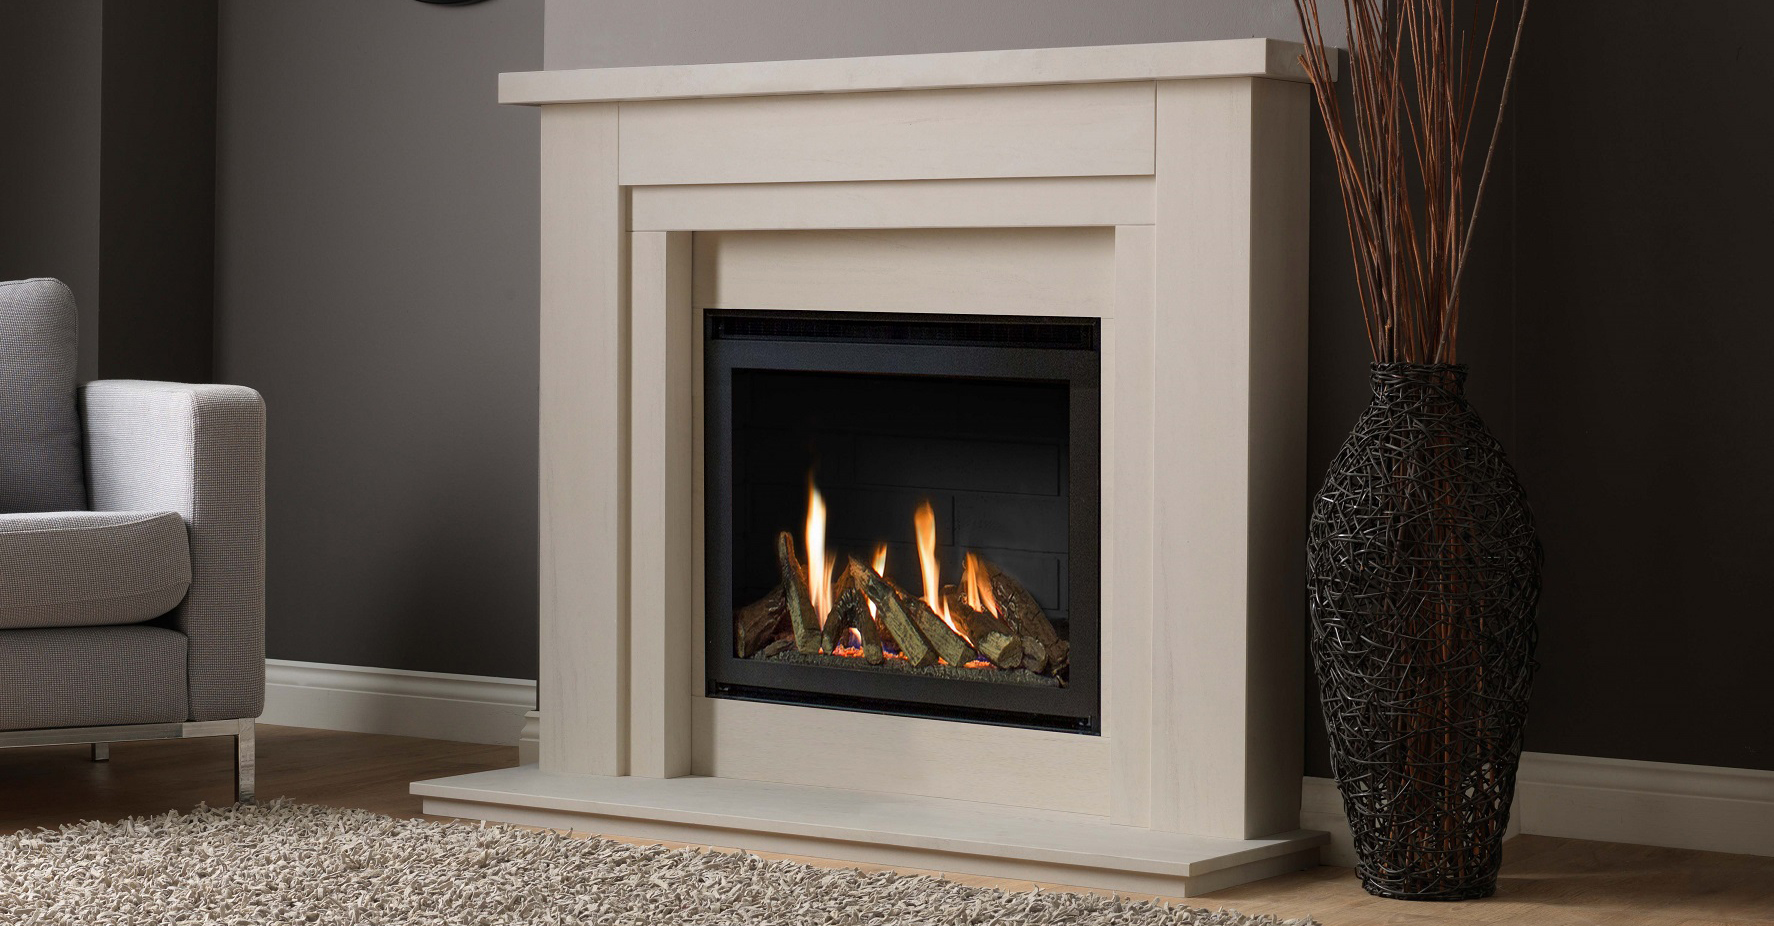 Hanley-54-Limestone-with-chelsea-gas-log-fire-2